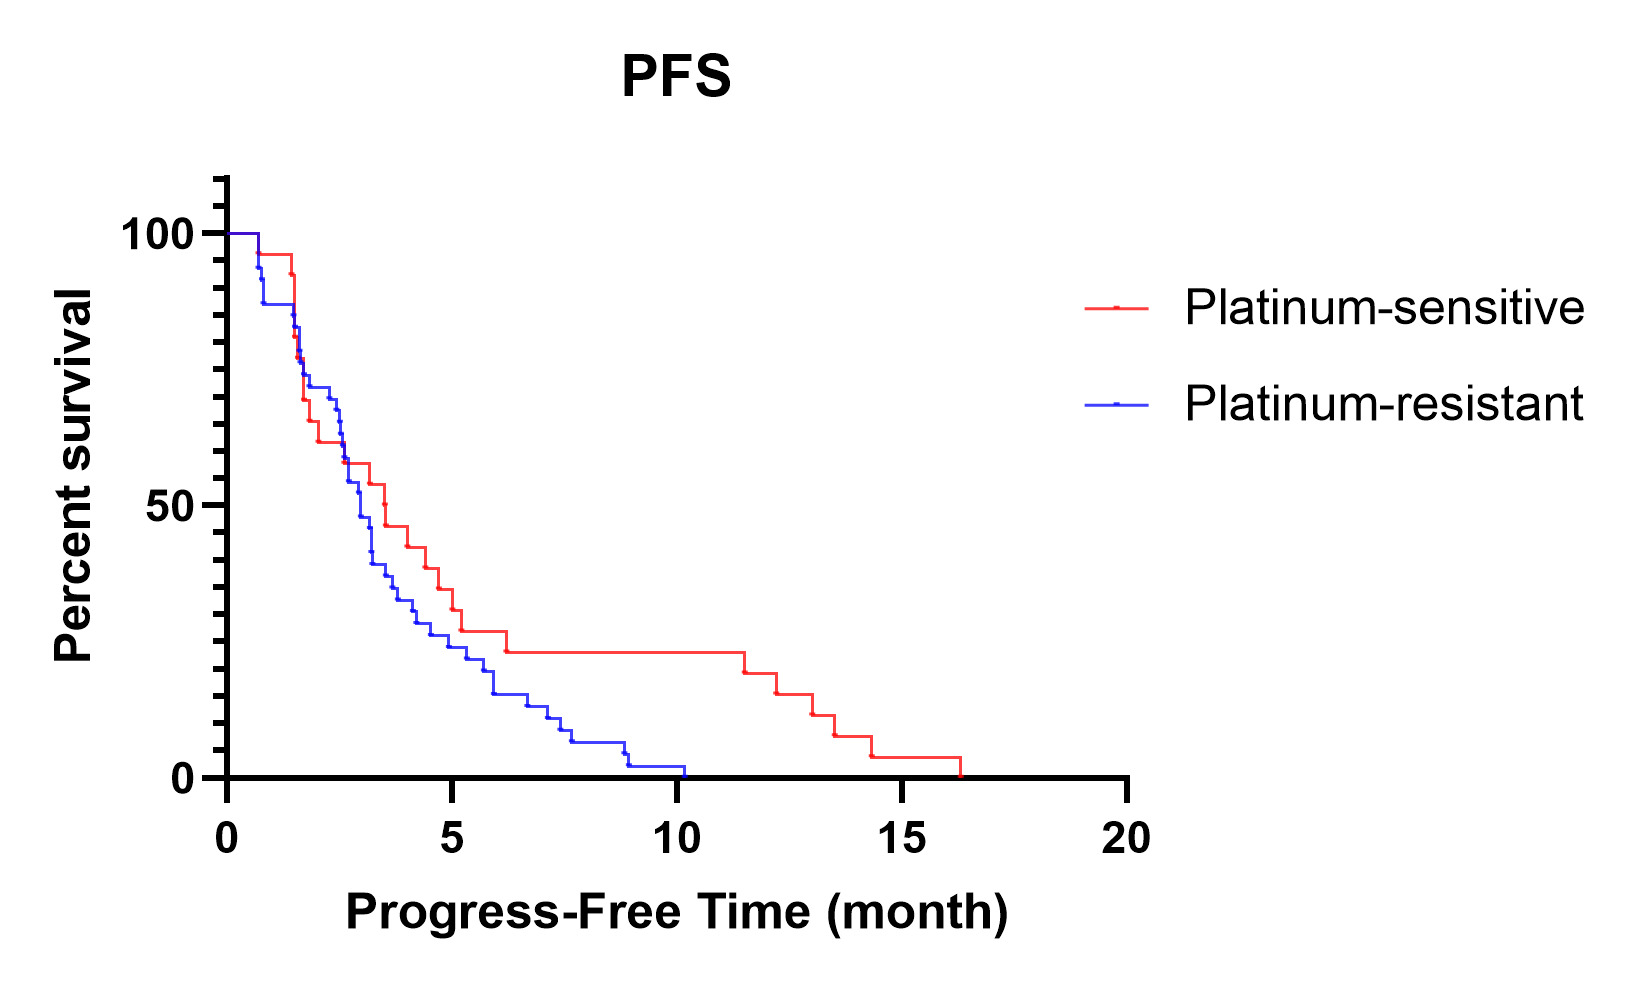 Evaluation Of Pemetrexed In The Treatment Of Epithelial Ovarian Cancer Fallopian Tube Cancer And Primary Peritoneal Cancer A Retrospective Study Research Square